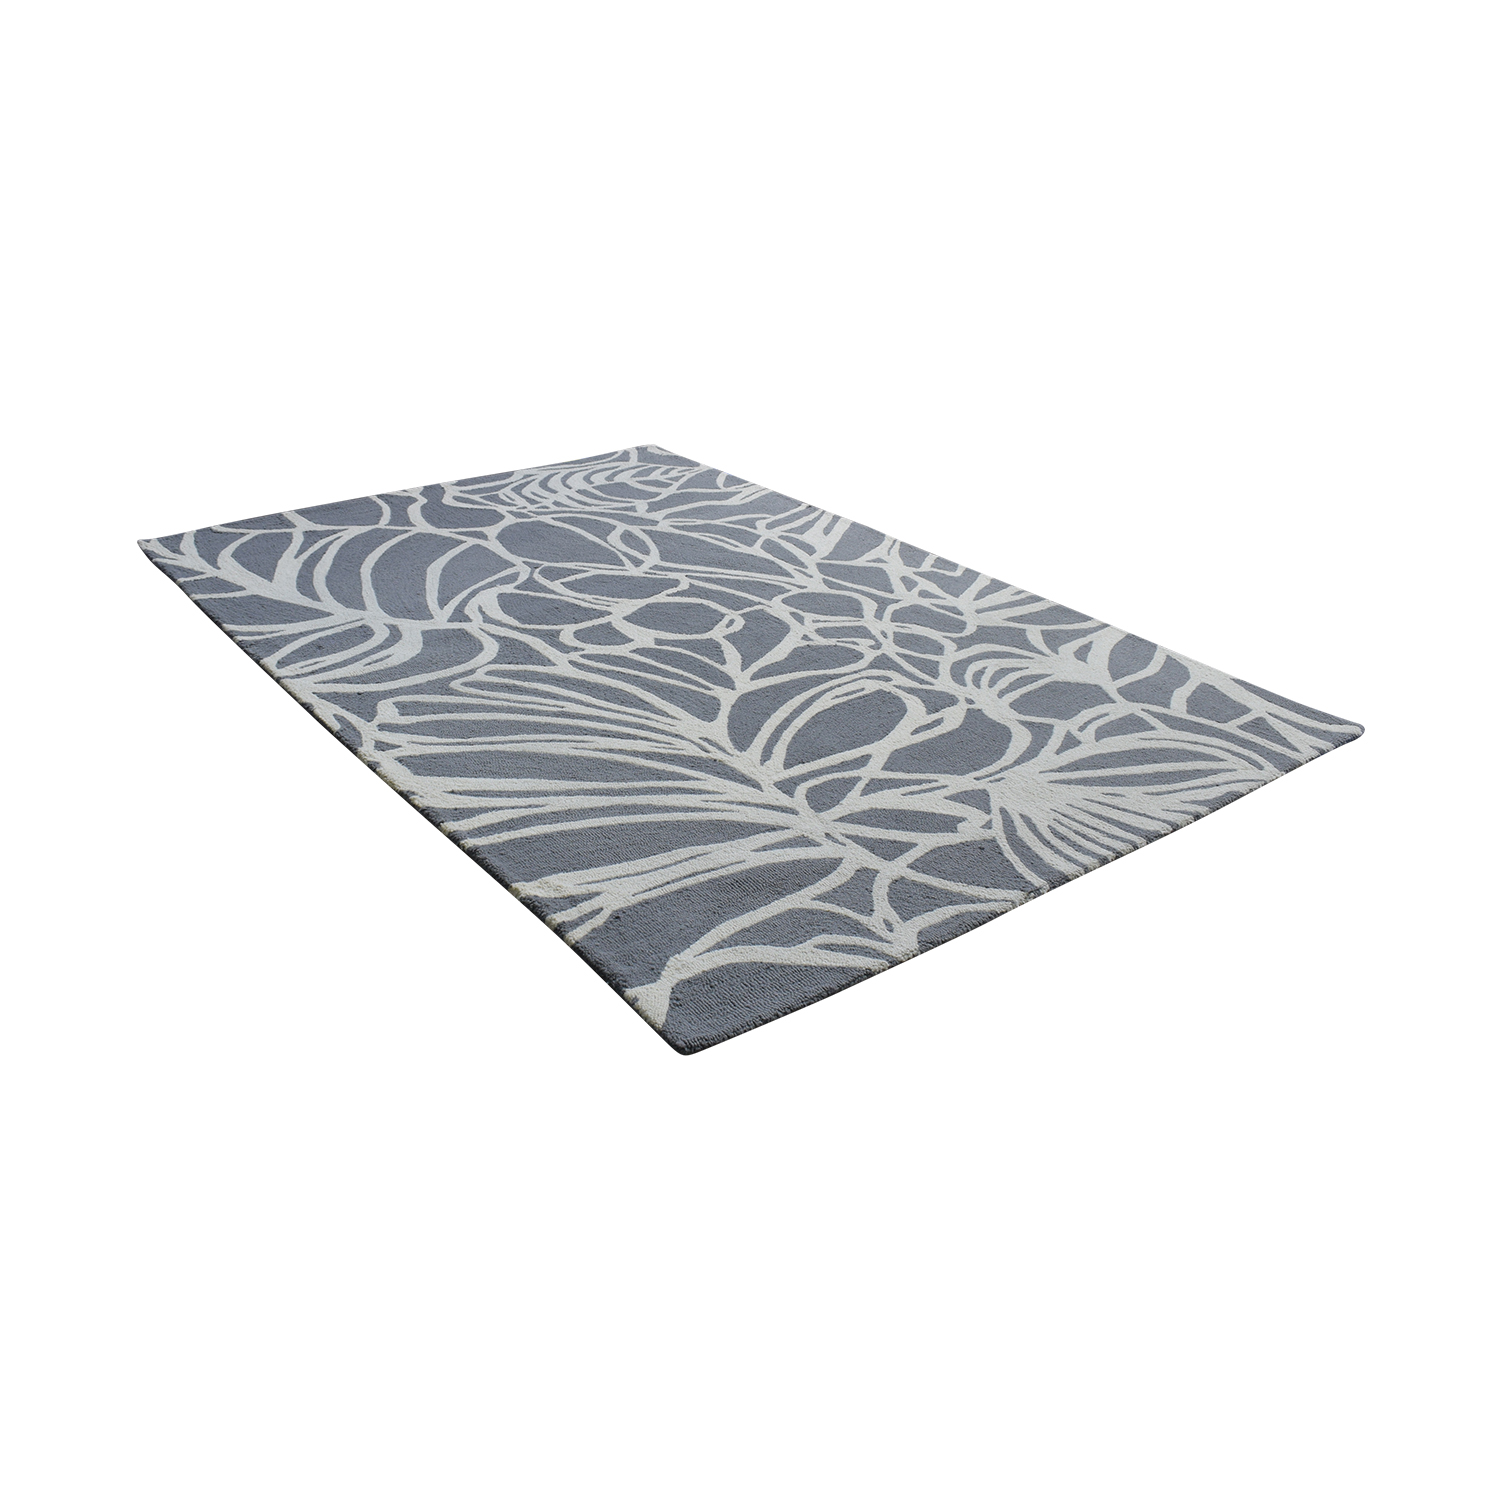 West Elm West Elm Sketch Rug nj